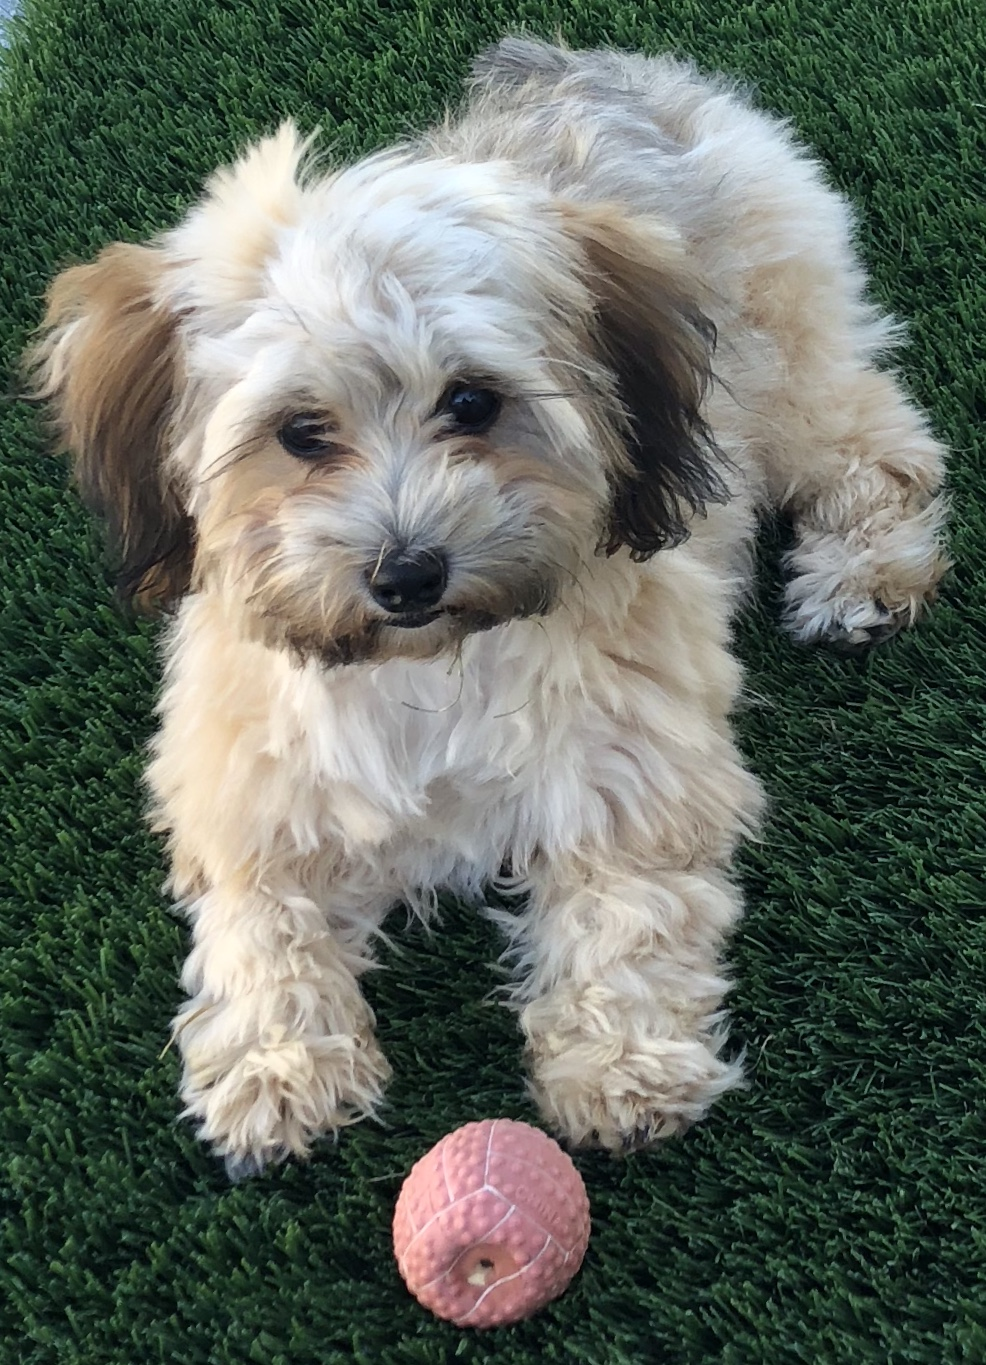 Photograph of Patterson Plumbing's cute yorkie dog playing with her pink ball on green grass.